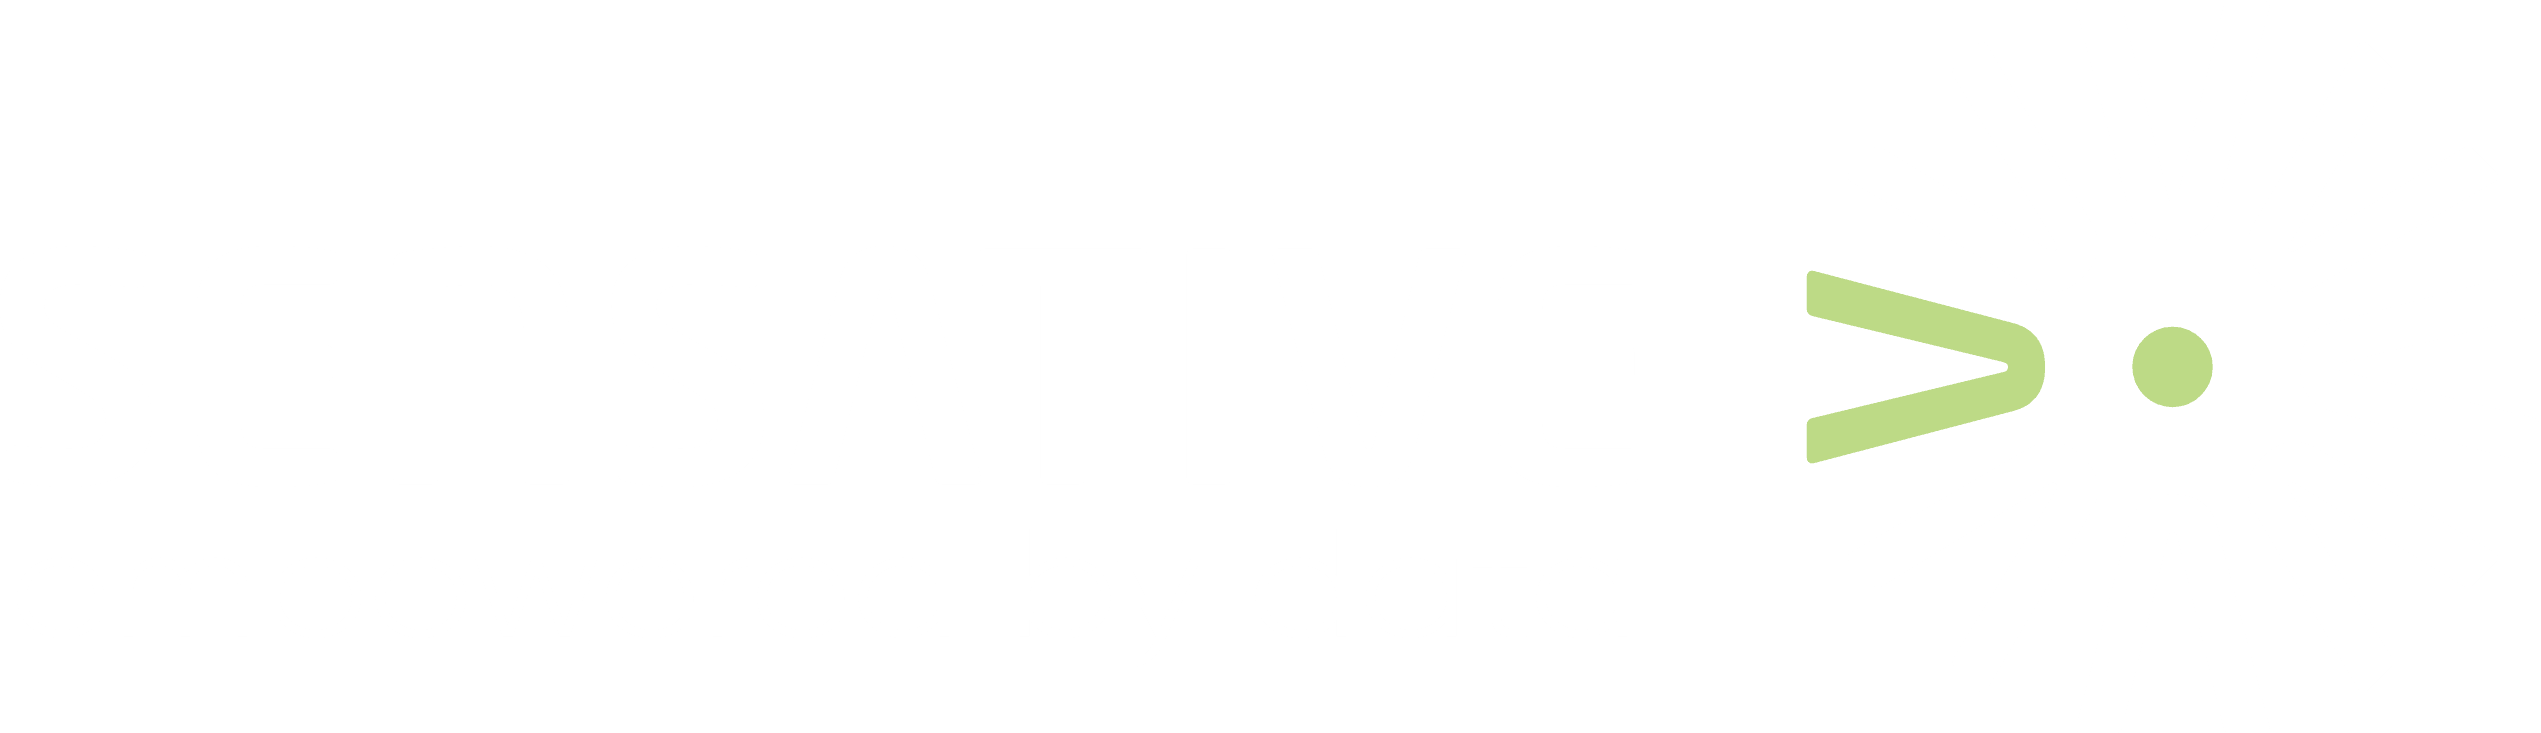 Sensative logo inverse empowered by data.